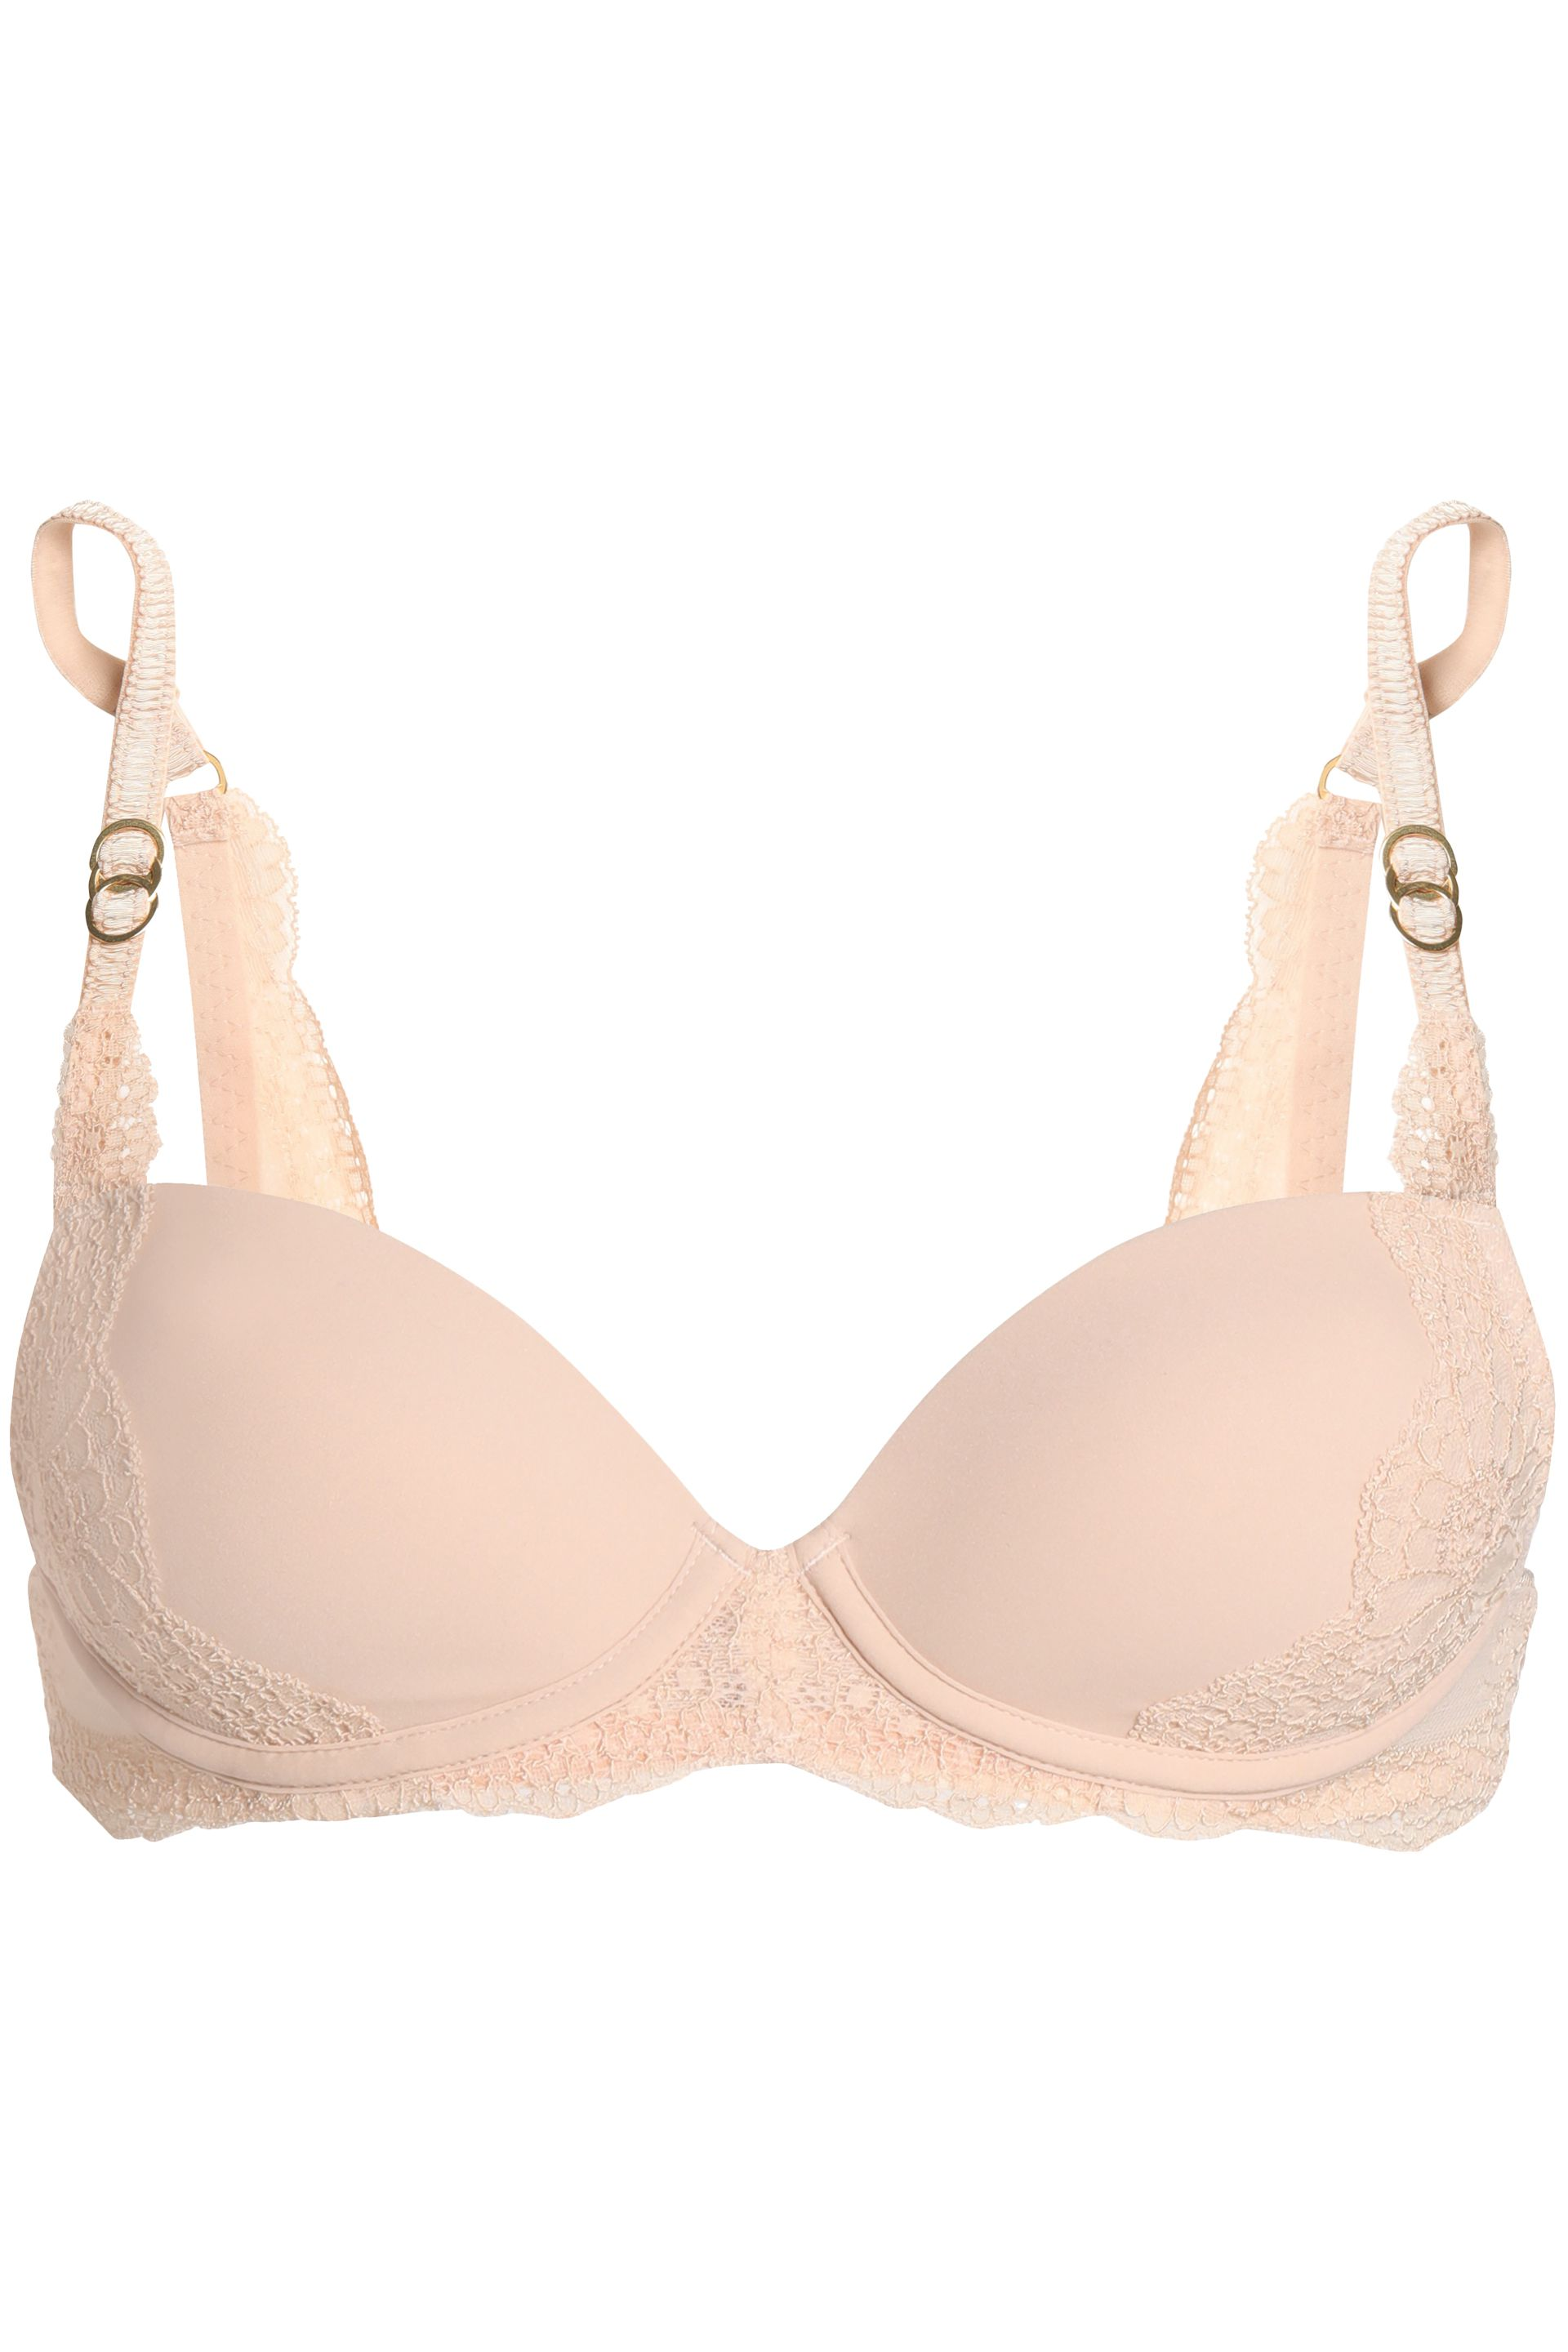 6777999a66a21 stella mccartney lace and stretch jersey underwired push up bra ...